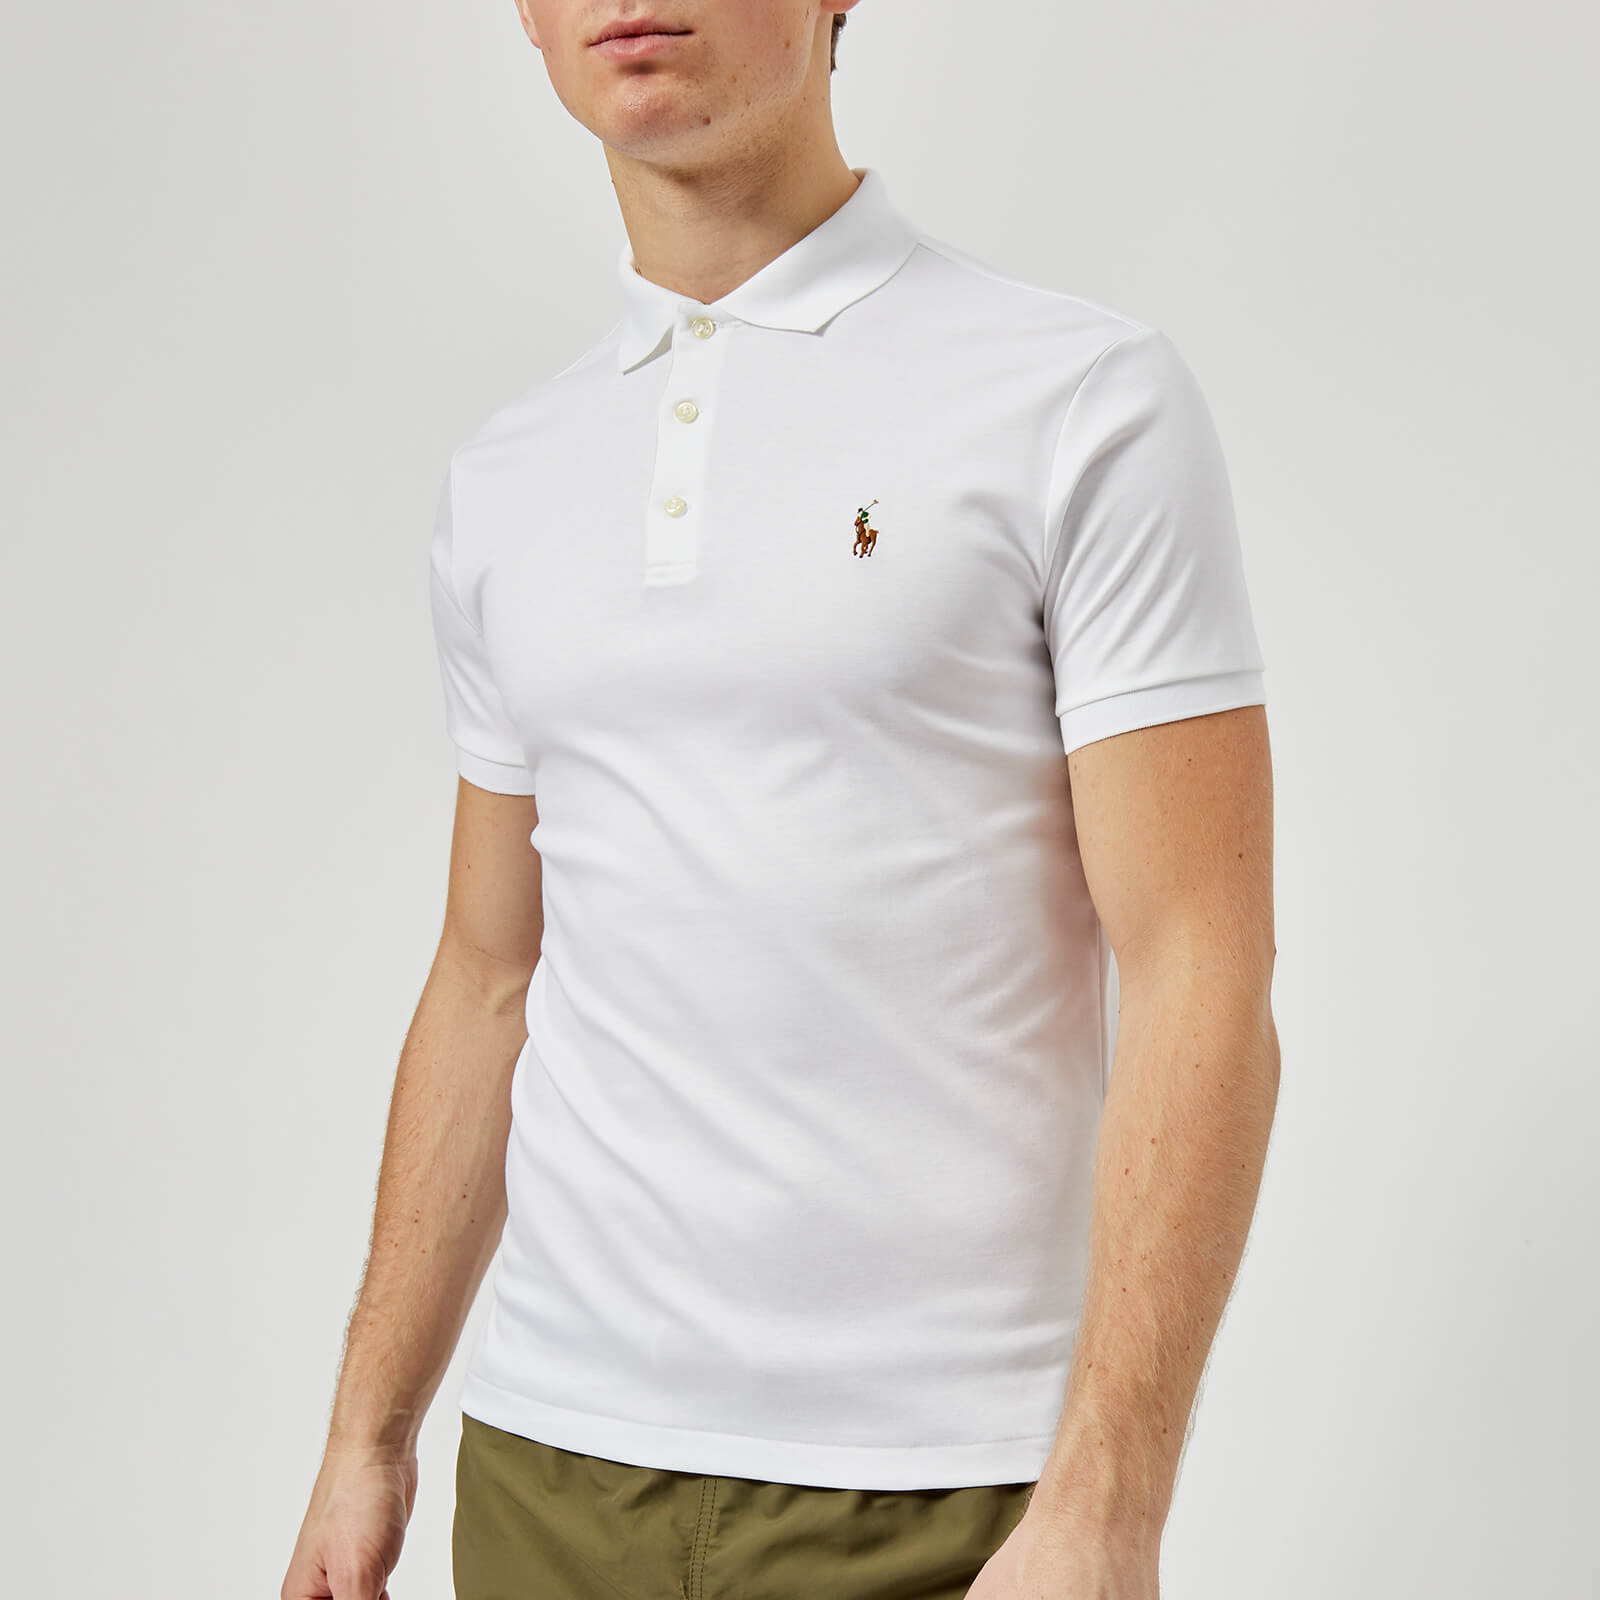 4902e1e034ca8 Polo Ralph Lauren Men's Slim Fit Pima Polo Shirt - White - Free UK Delivery  over £50